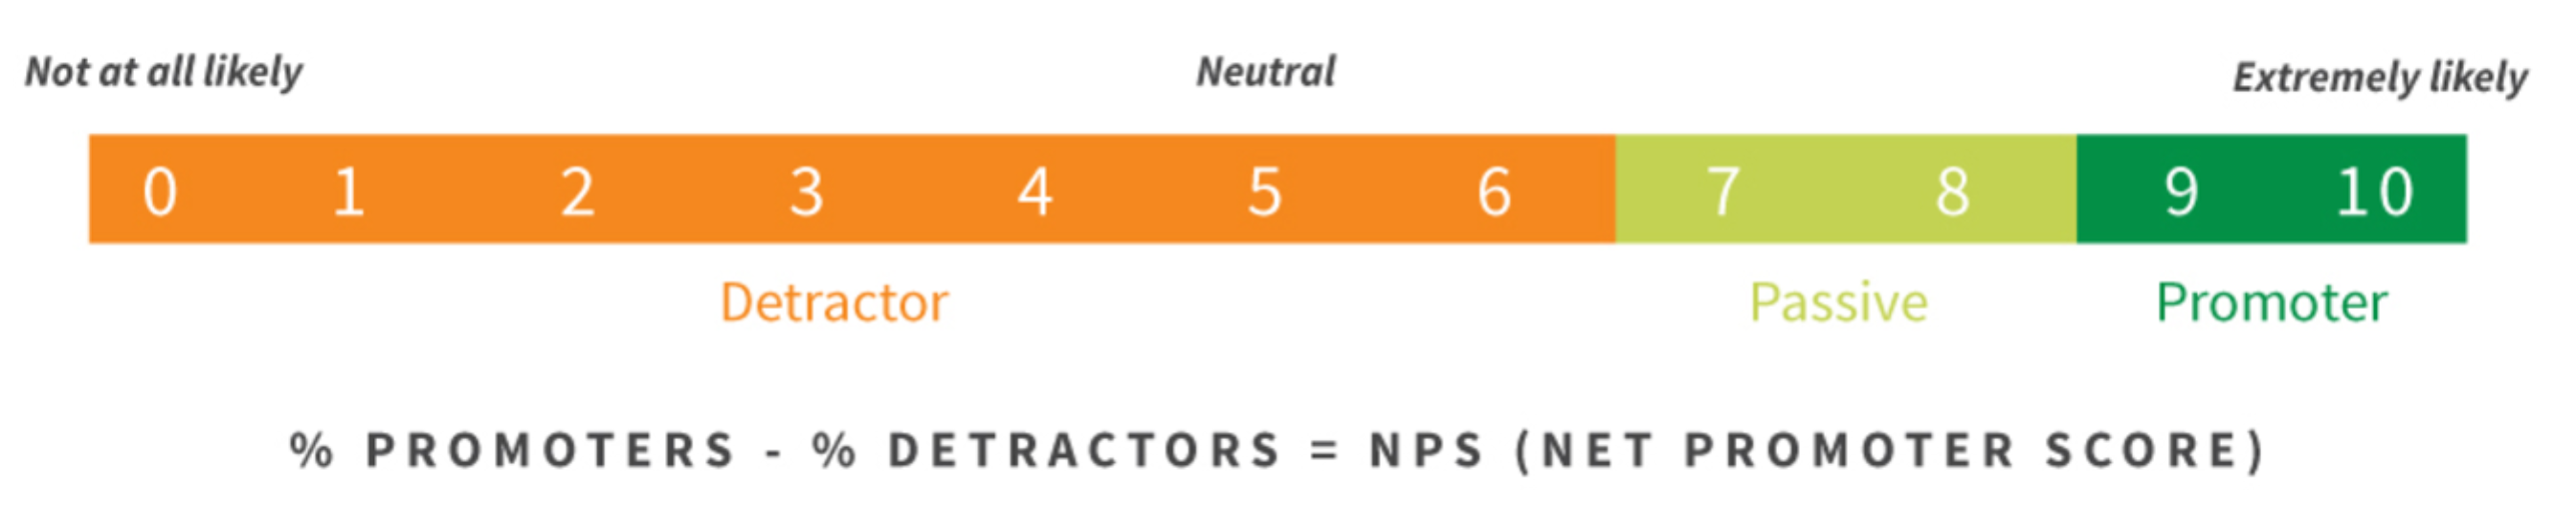 how-to-calculate-net-promoter-score-nps